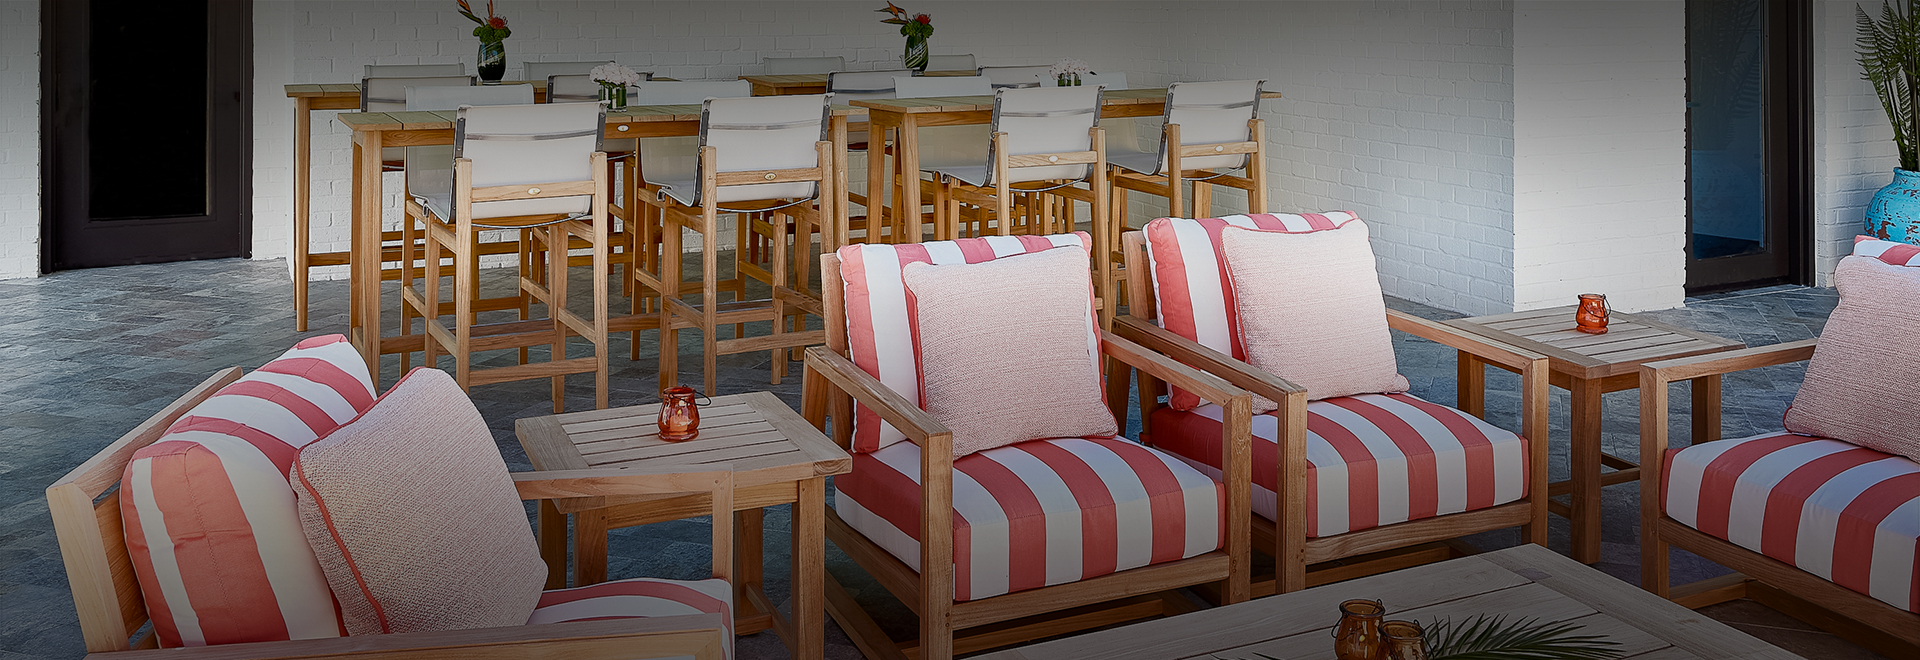 red and white stripped chairs